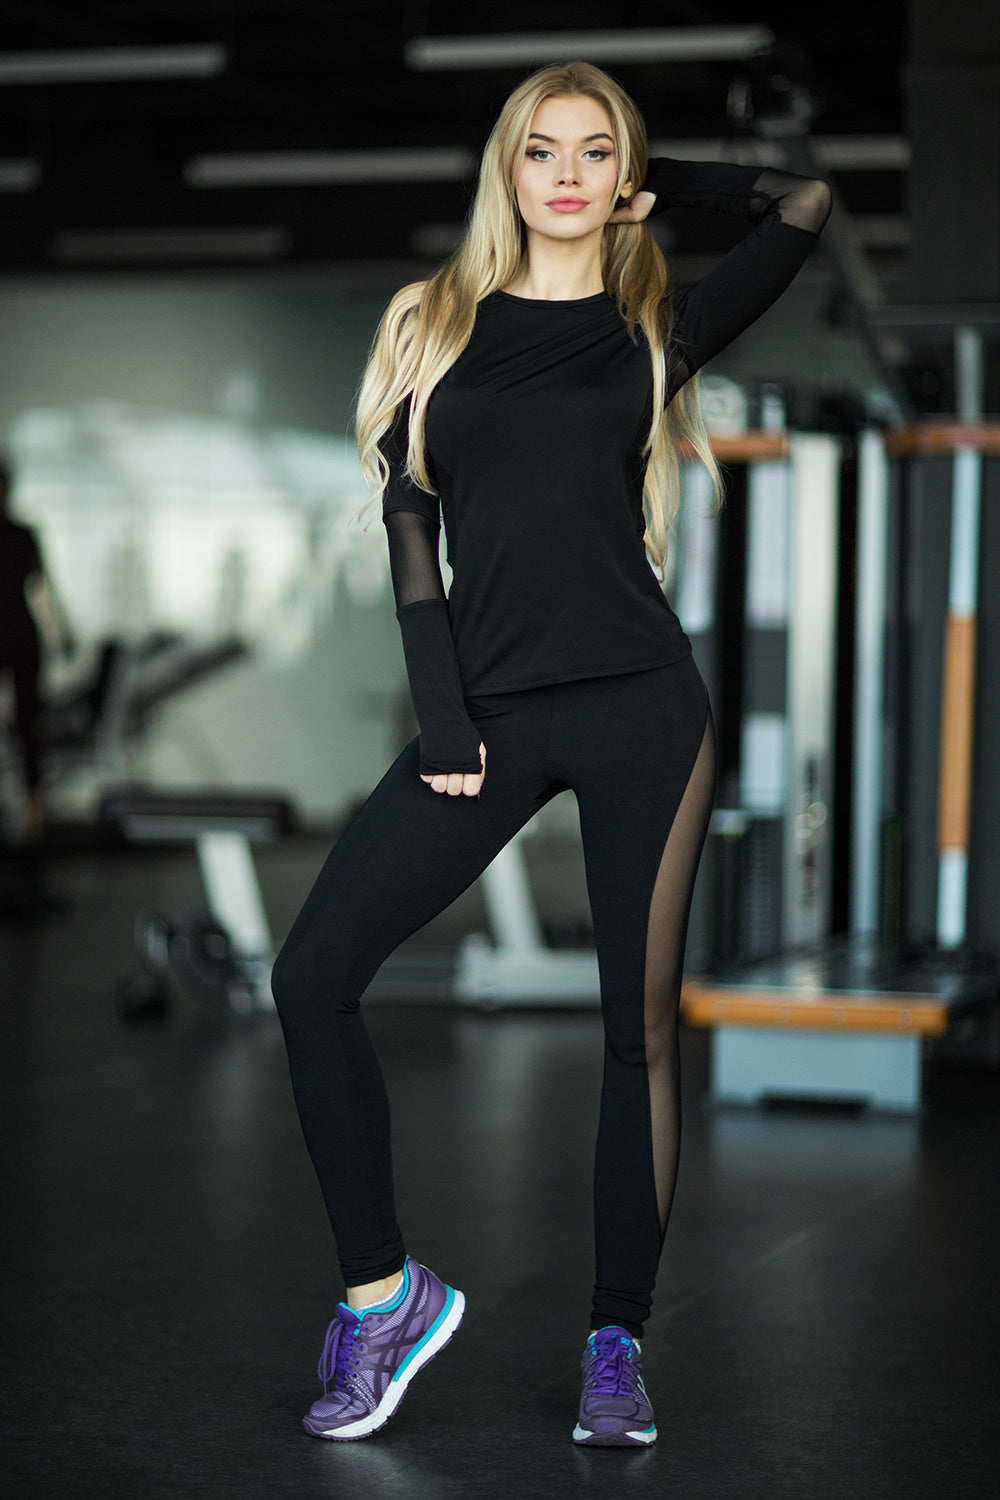 Basic Black - Designed for Fitness